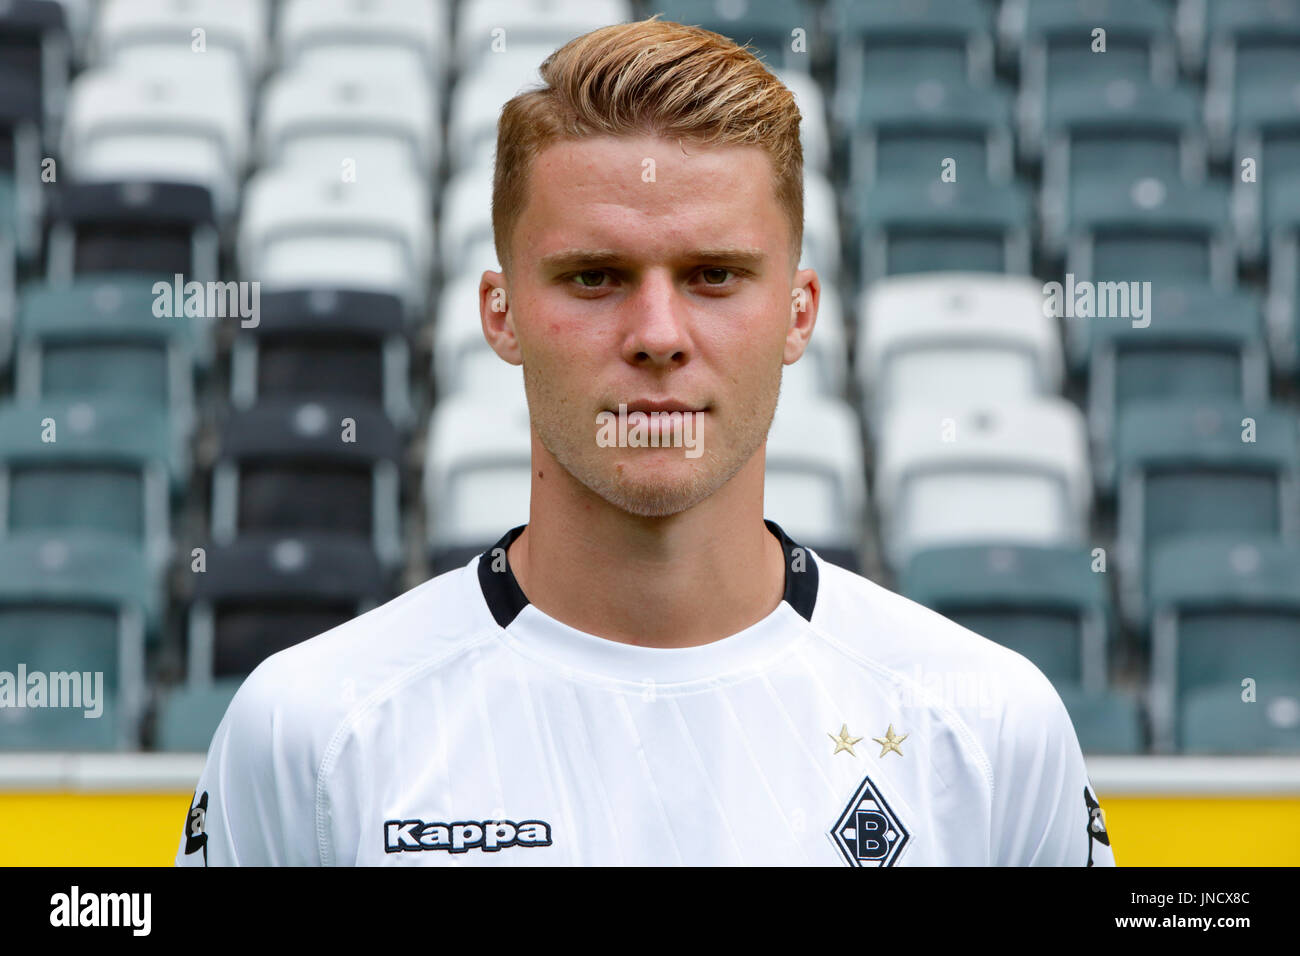 football,Bundesliga,2017/2018,Borussia Moenchengladbach,press photo shooting,portrait,Nico Elvedi - Stock Image